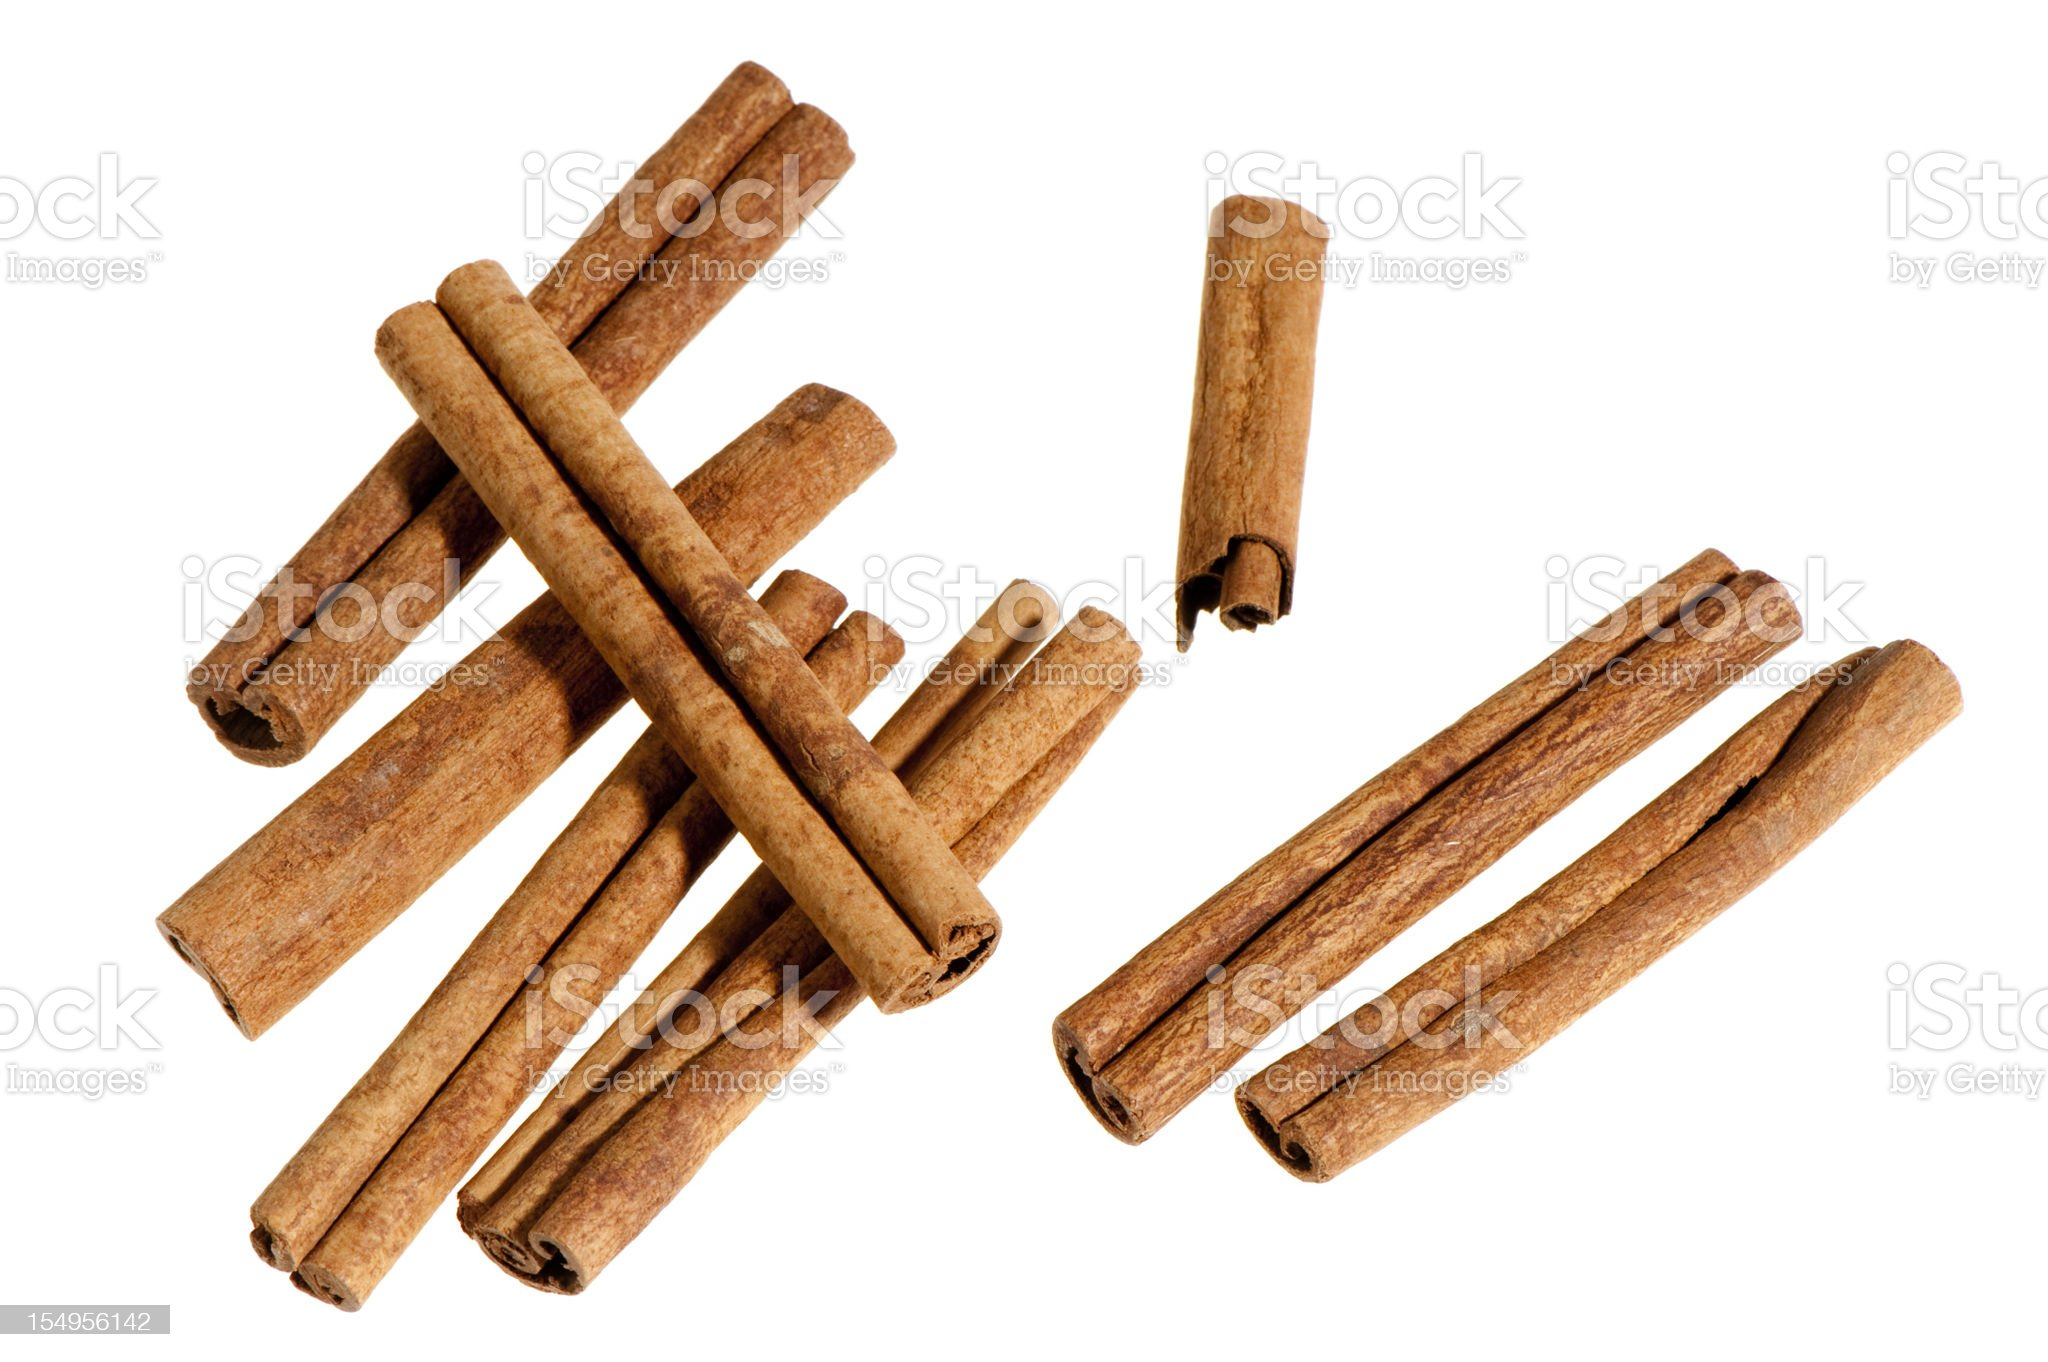 Group of cinnamon sticks on white background royalty-free stock photo